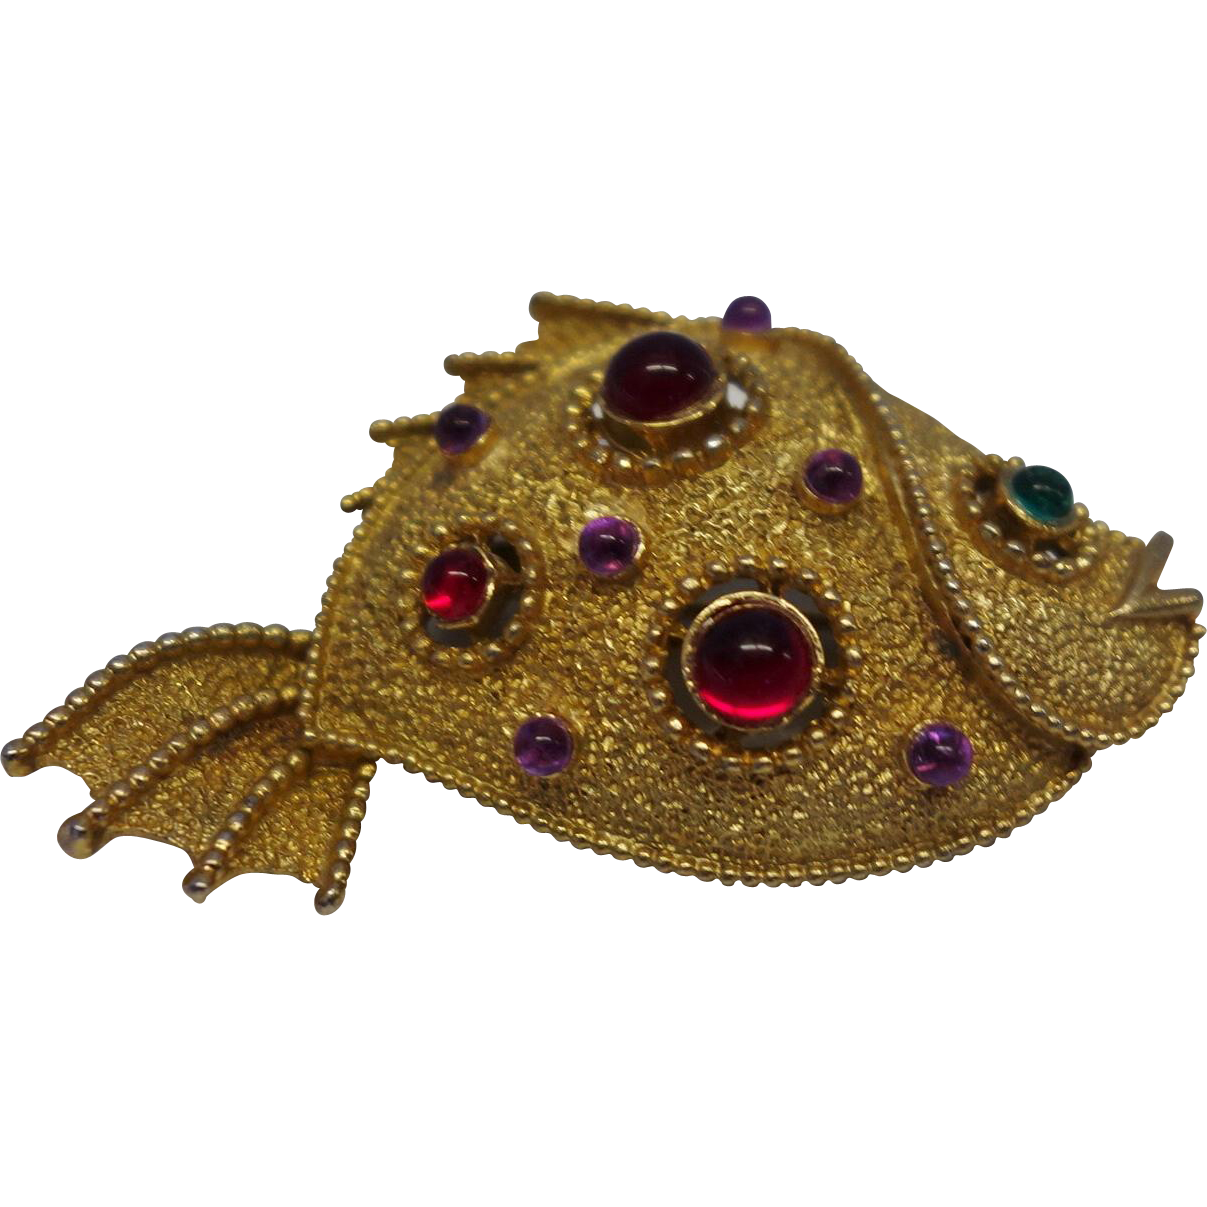 Vintage Jeweled Fish Pin by J.J.